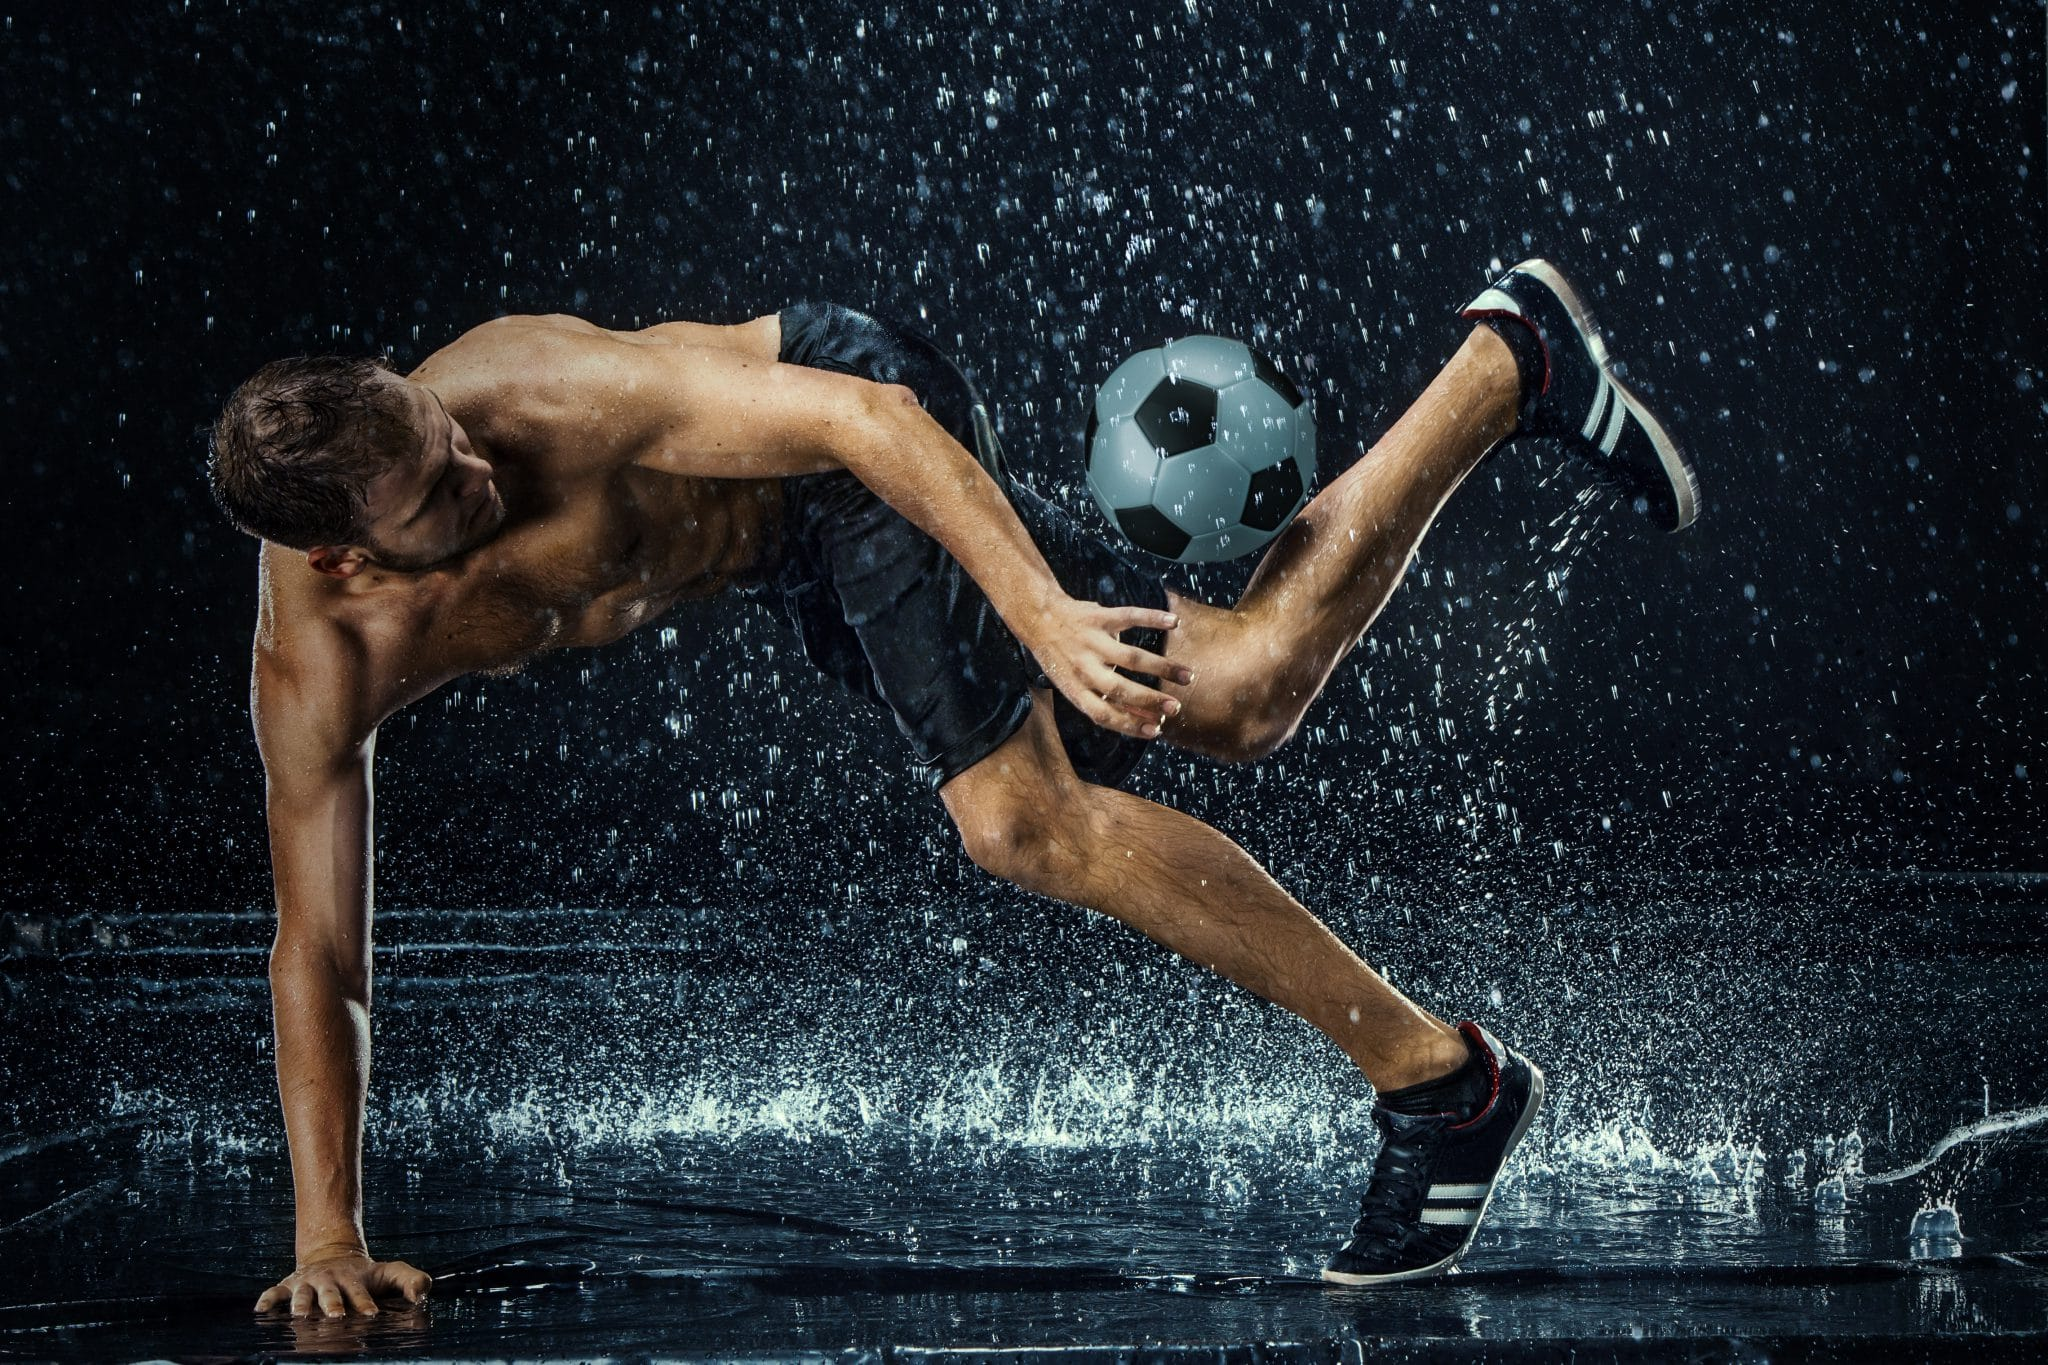 water-drops-around-football-player-PHSDVBK